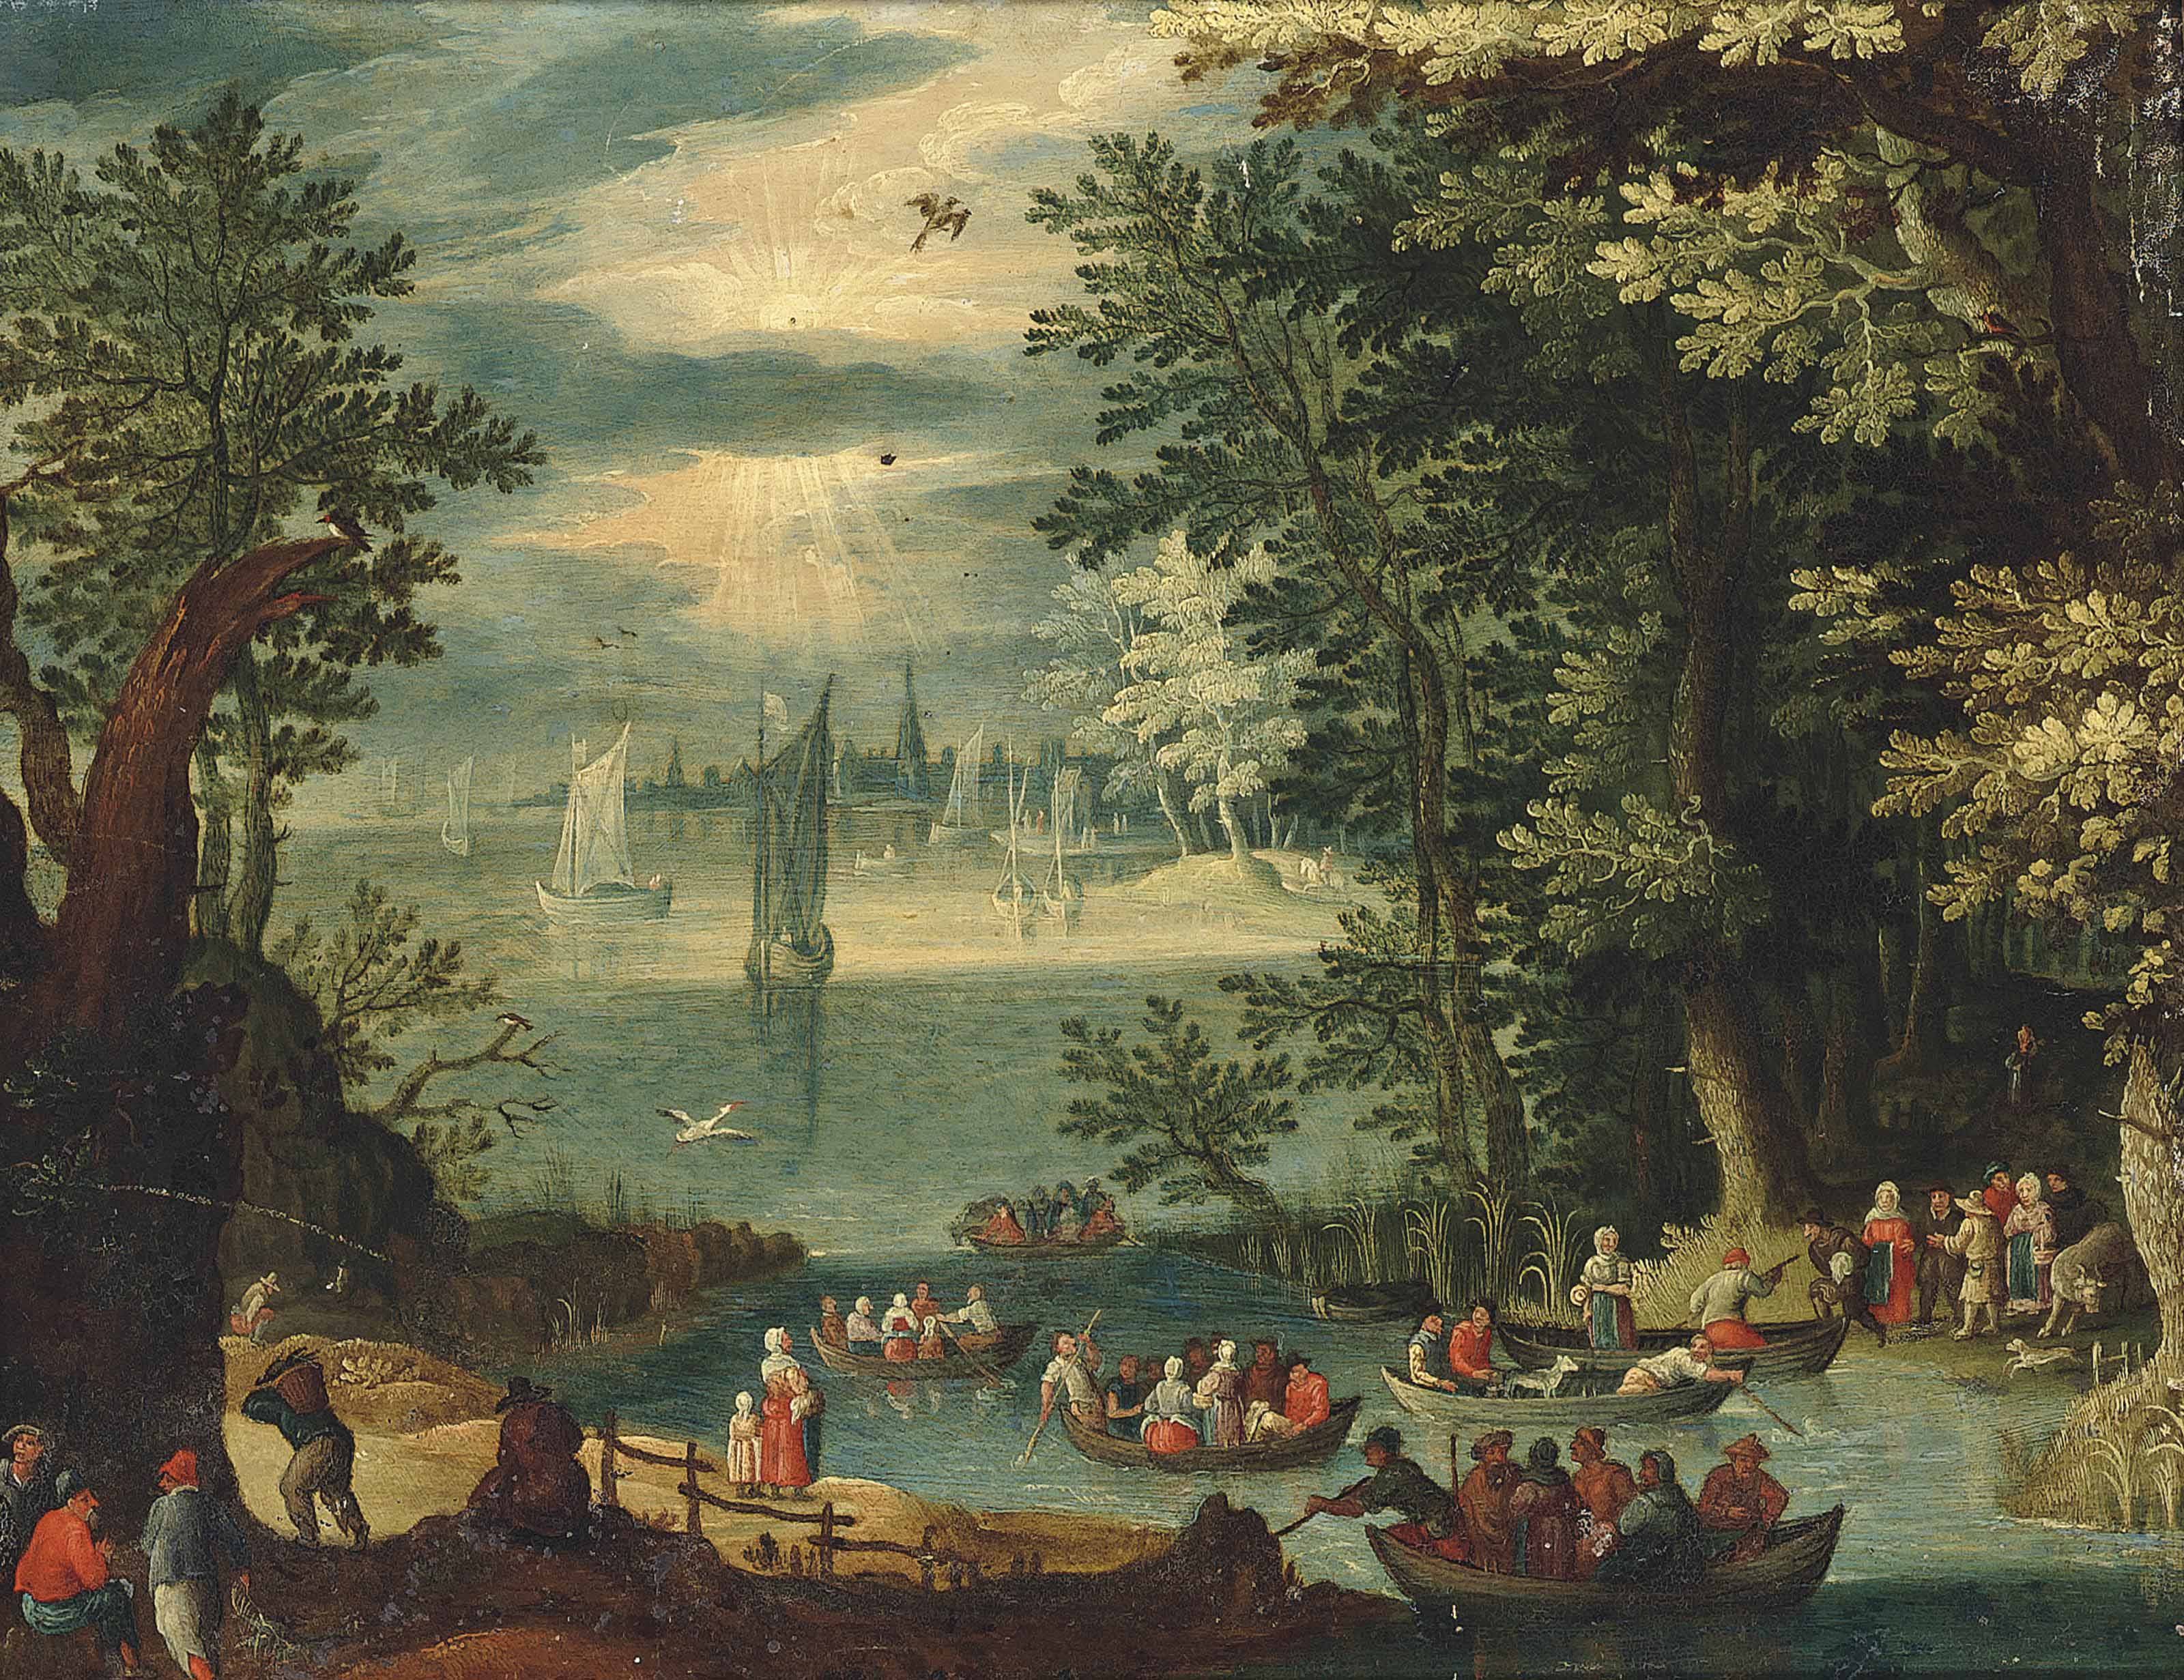 Attributed to Abraham Govaerts